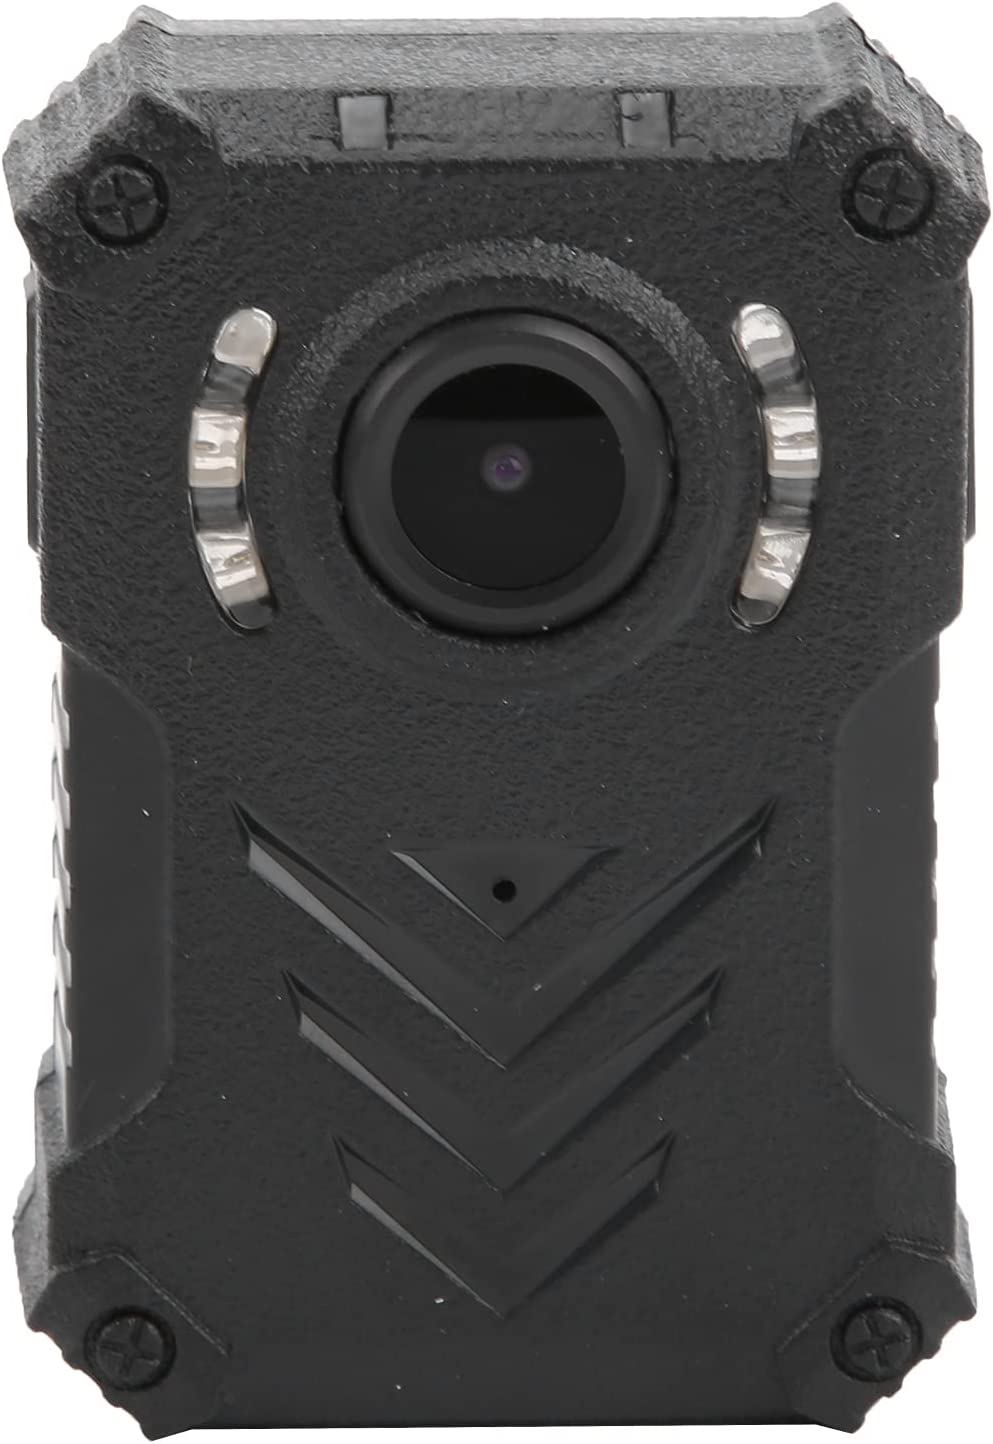 LED Worn Camera, Wide Viewing Angle Rechargeable Body Camera with Infrared LEDs for Outdoor for Home for Enforcement Recorder for Security